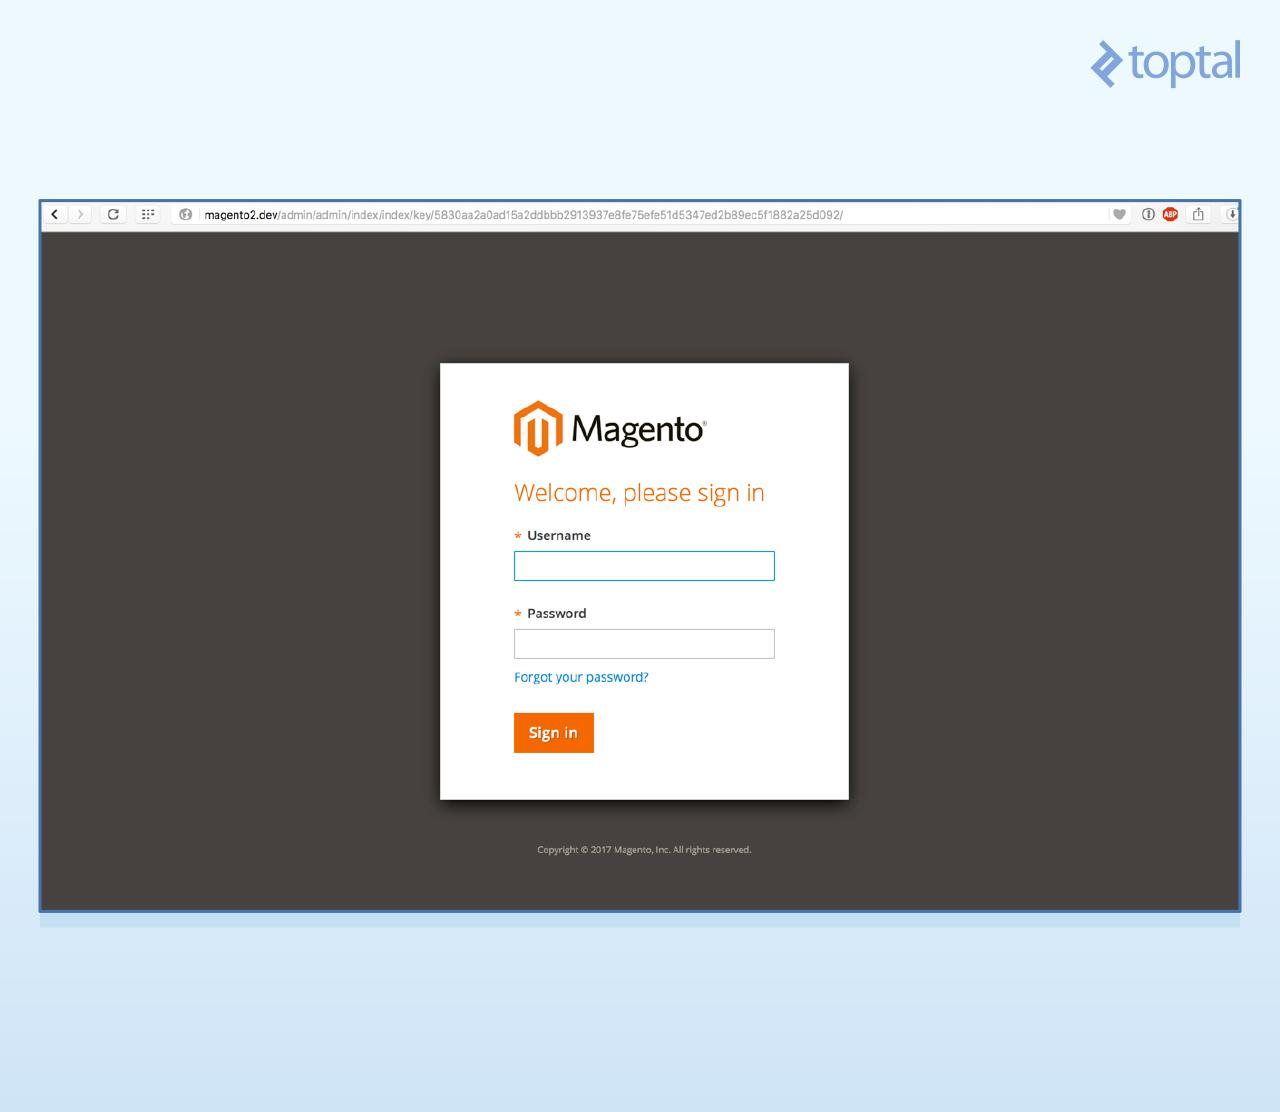 Admin application login page